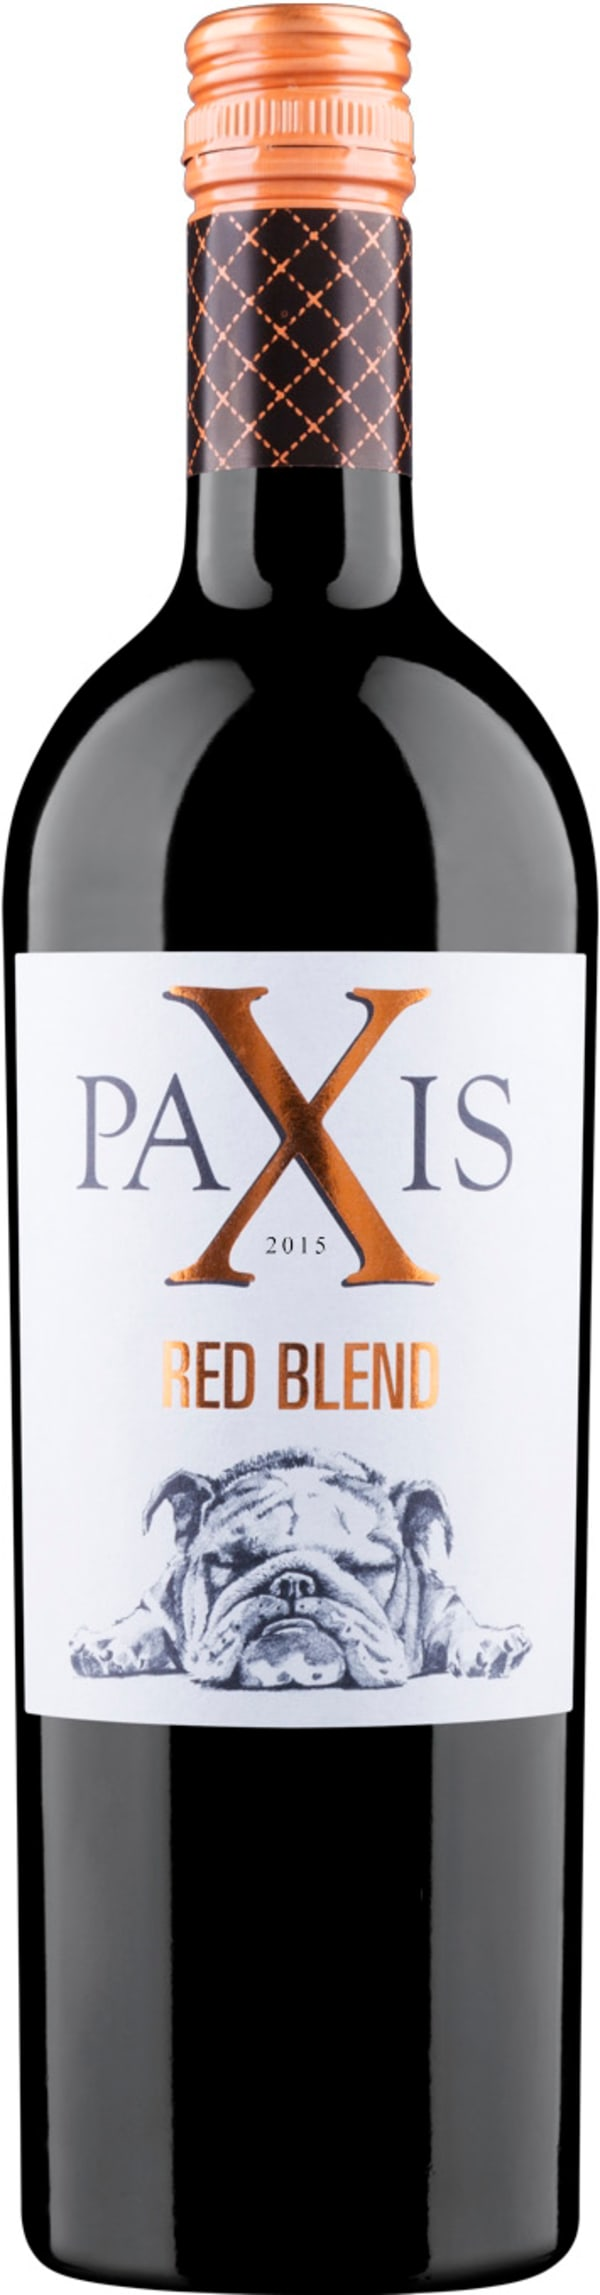 Paxis Red Blend 2013